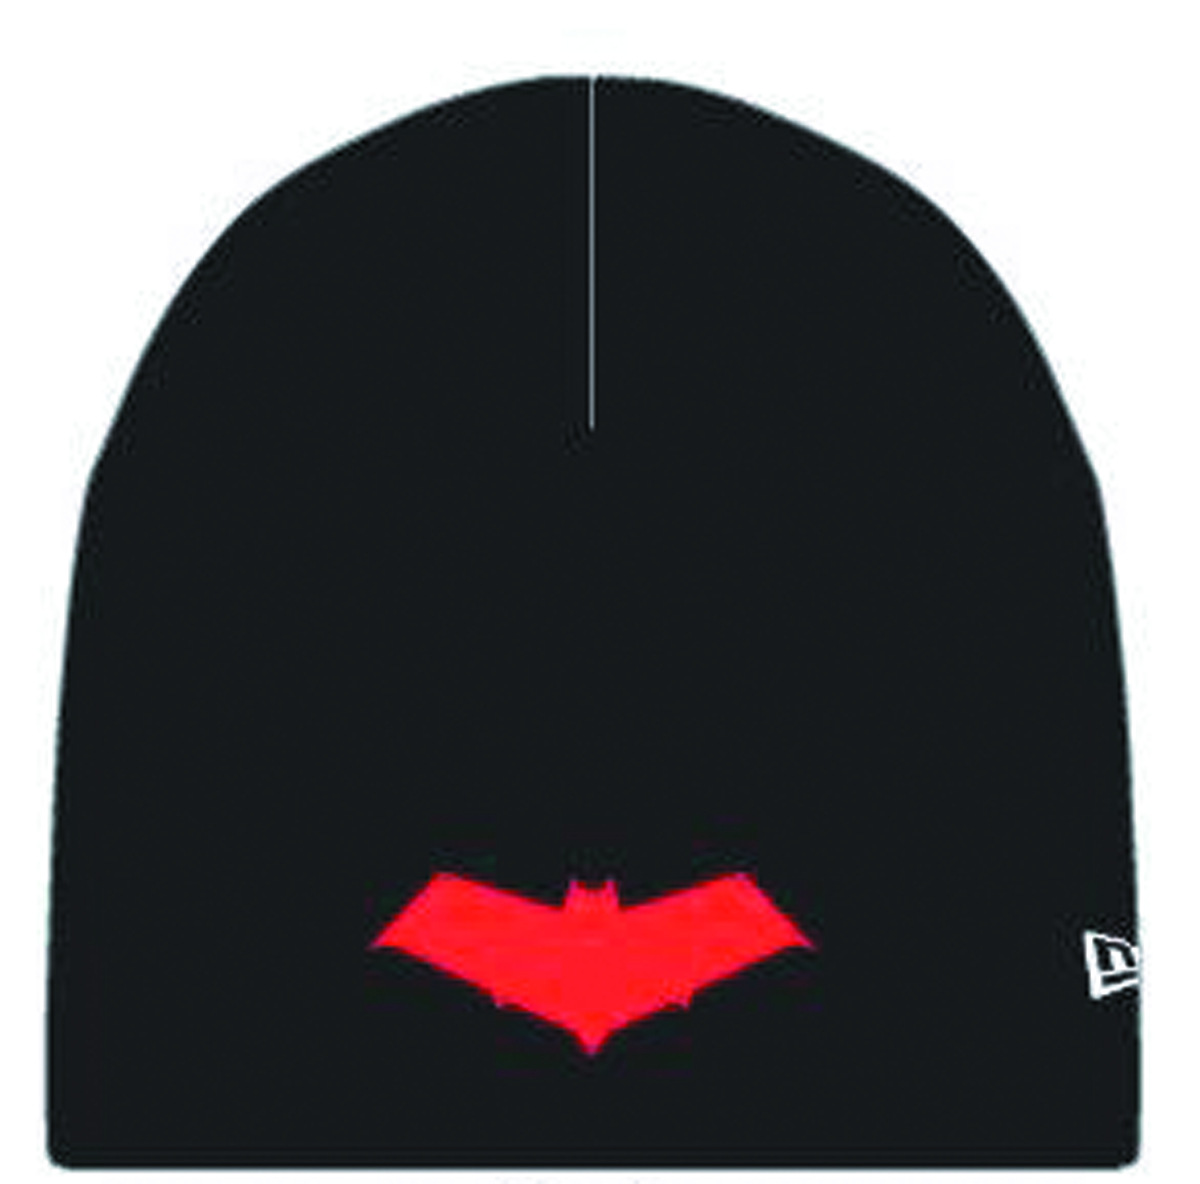 RED HOOD SYMBOL PX KNIT BEANIE